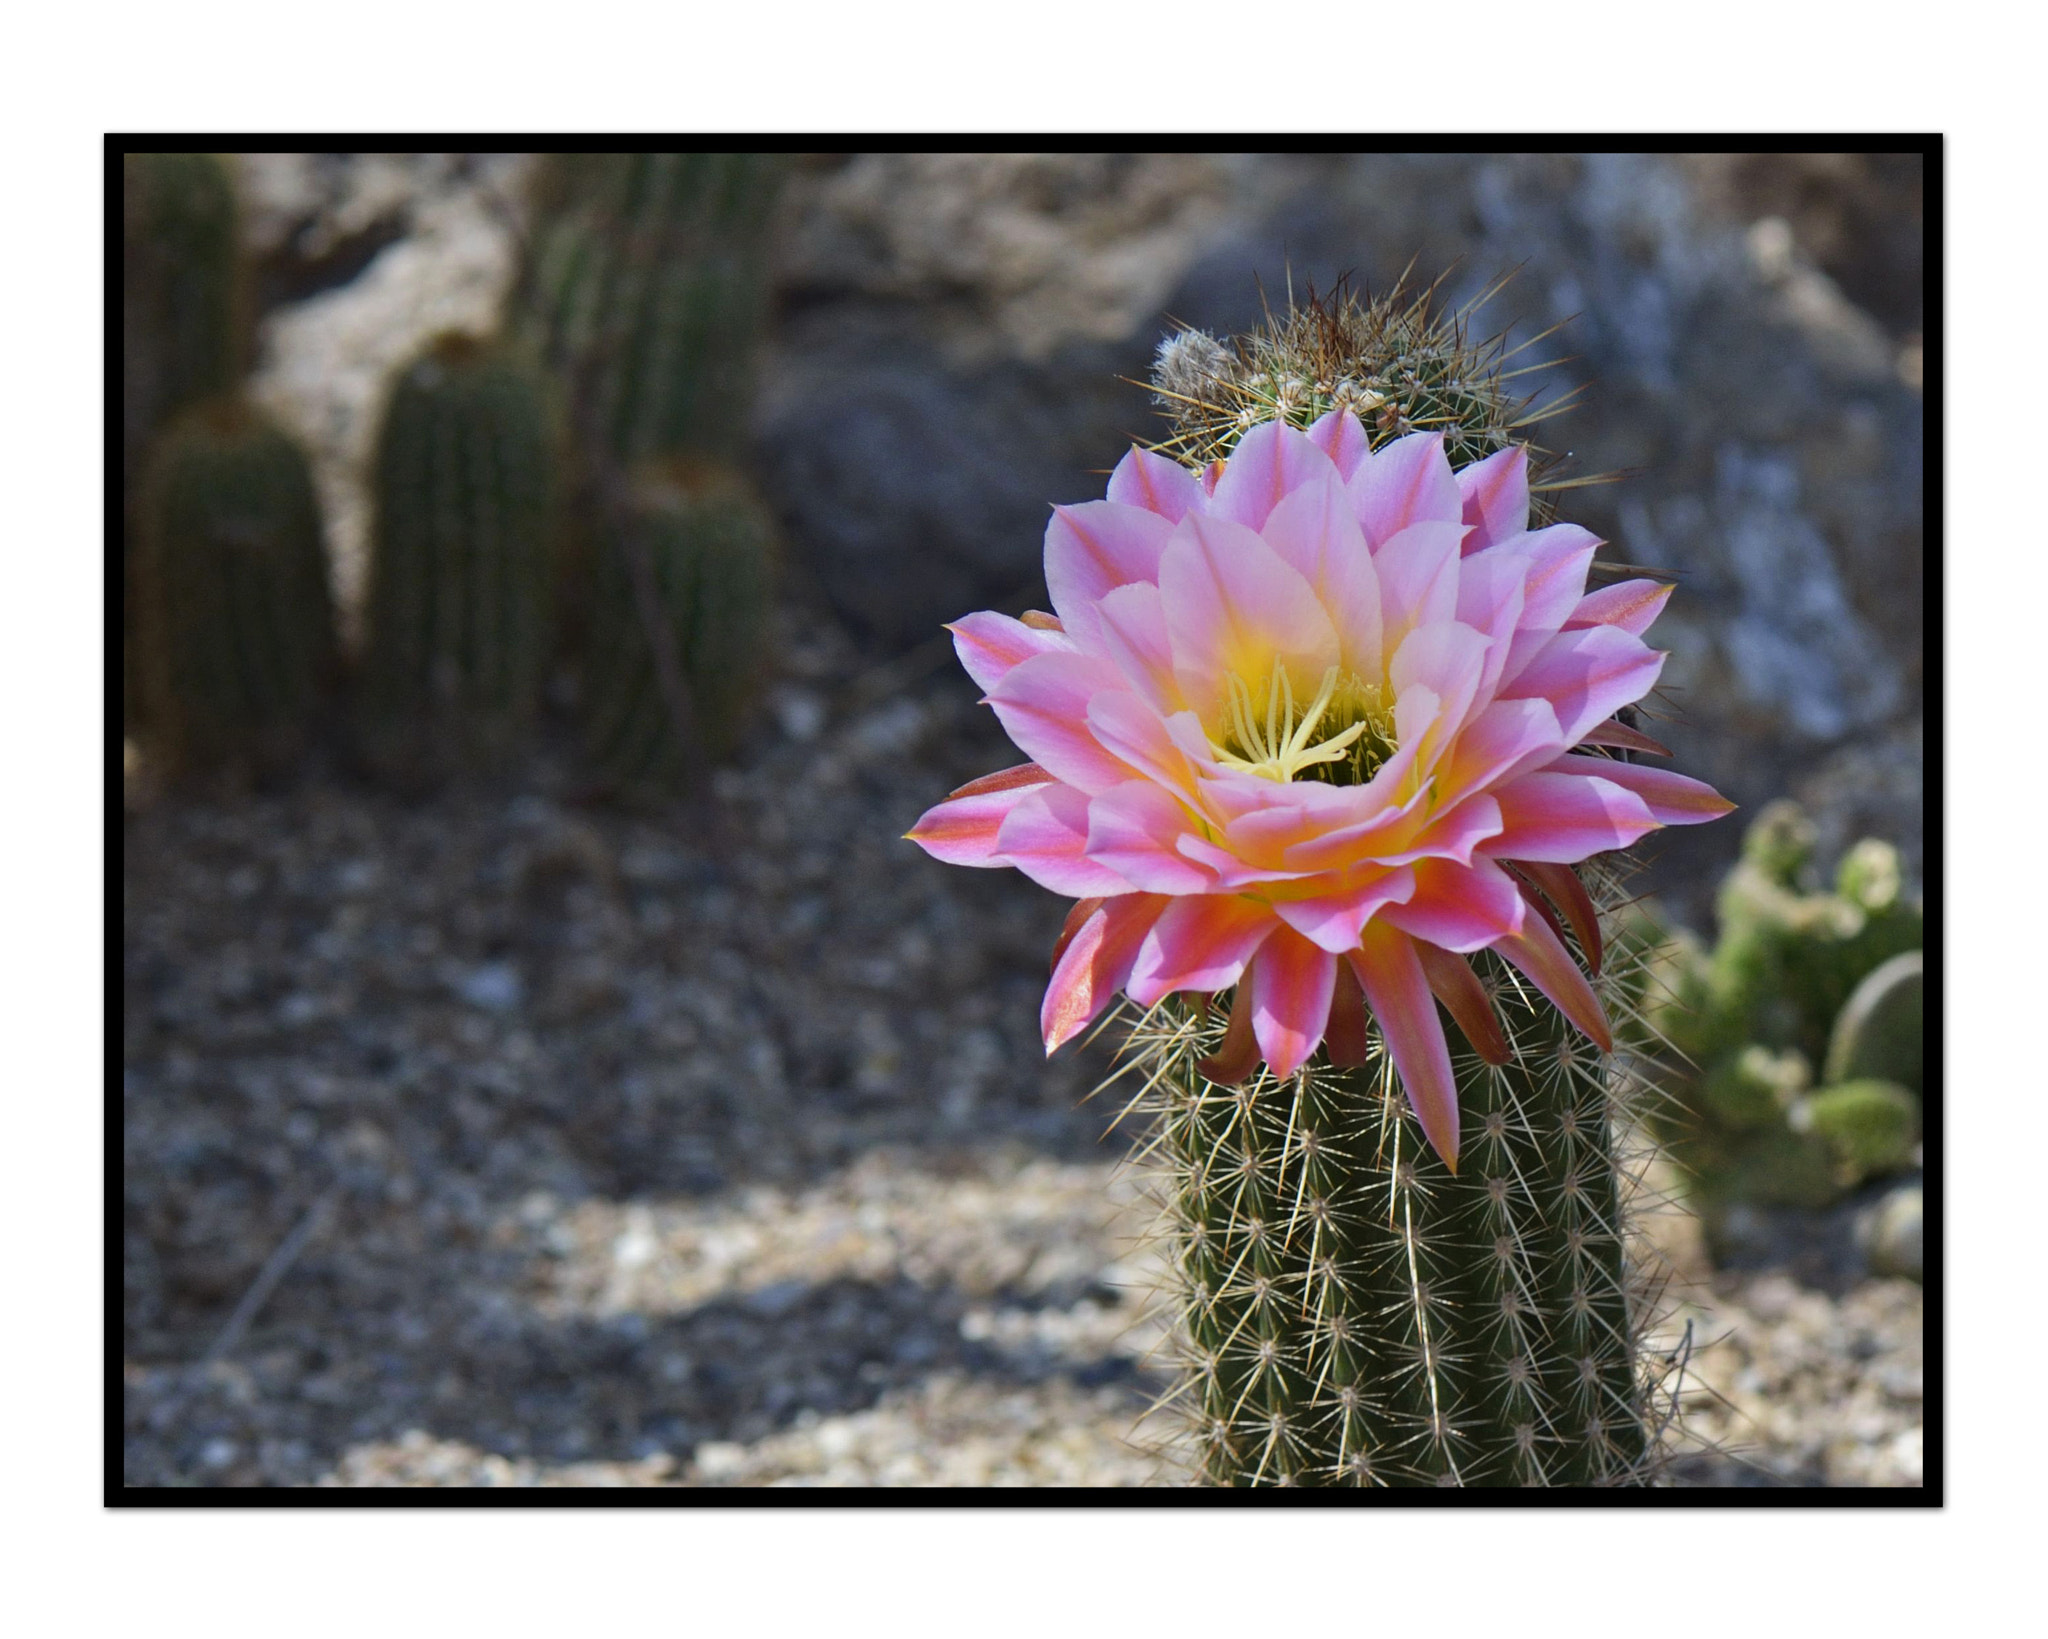 Photograph Cactus bloom by Angella Parker on 500px